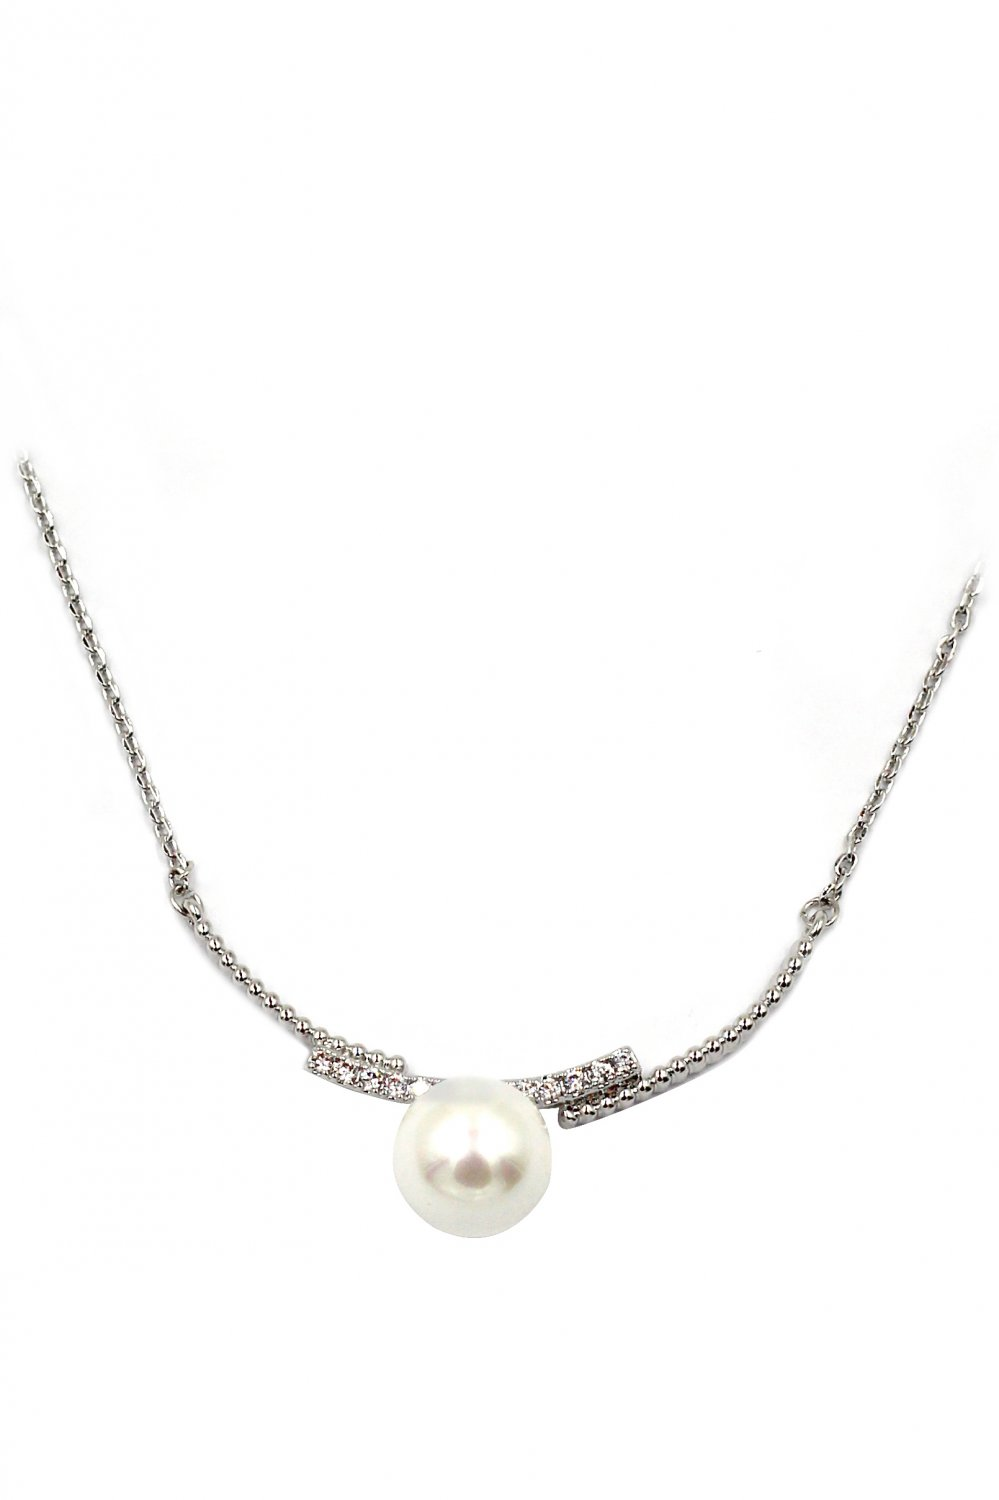 Copulation silver ceystal line and pearl necklace